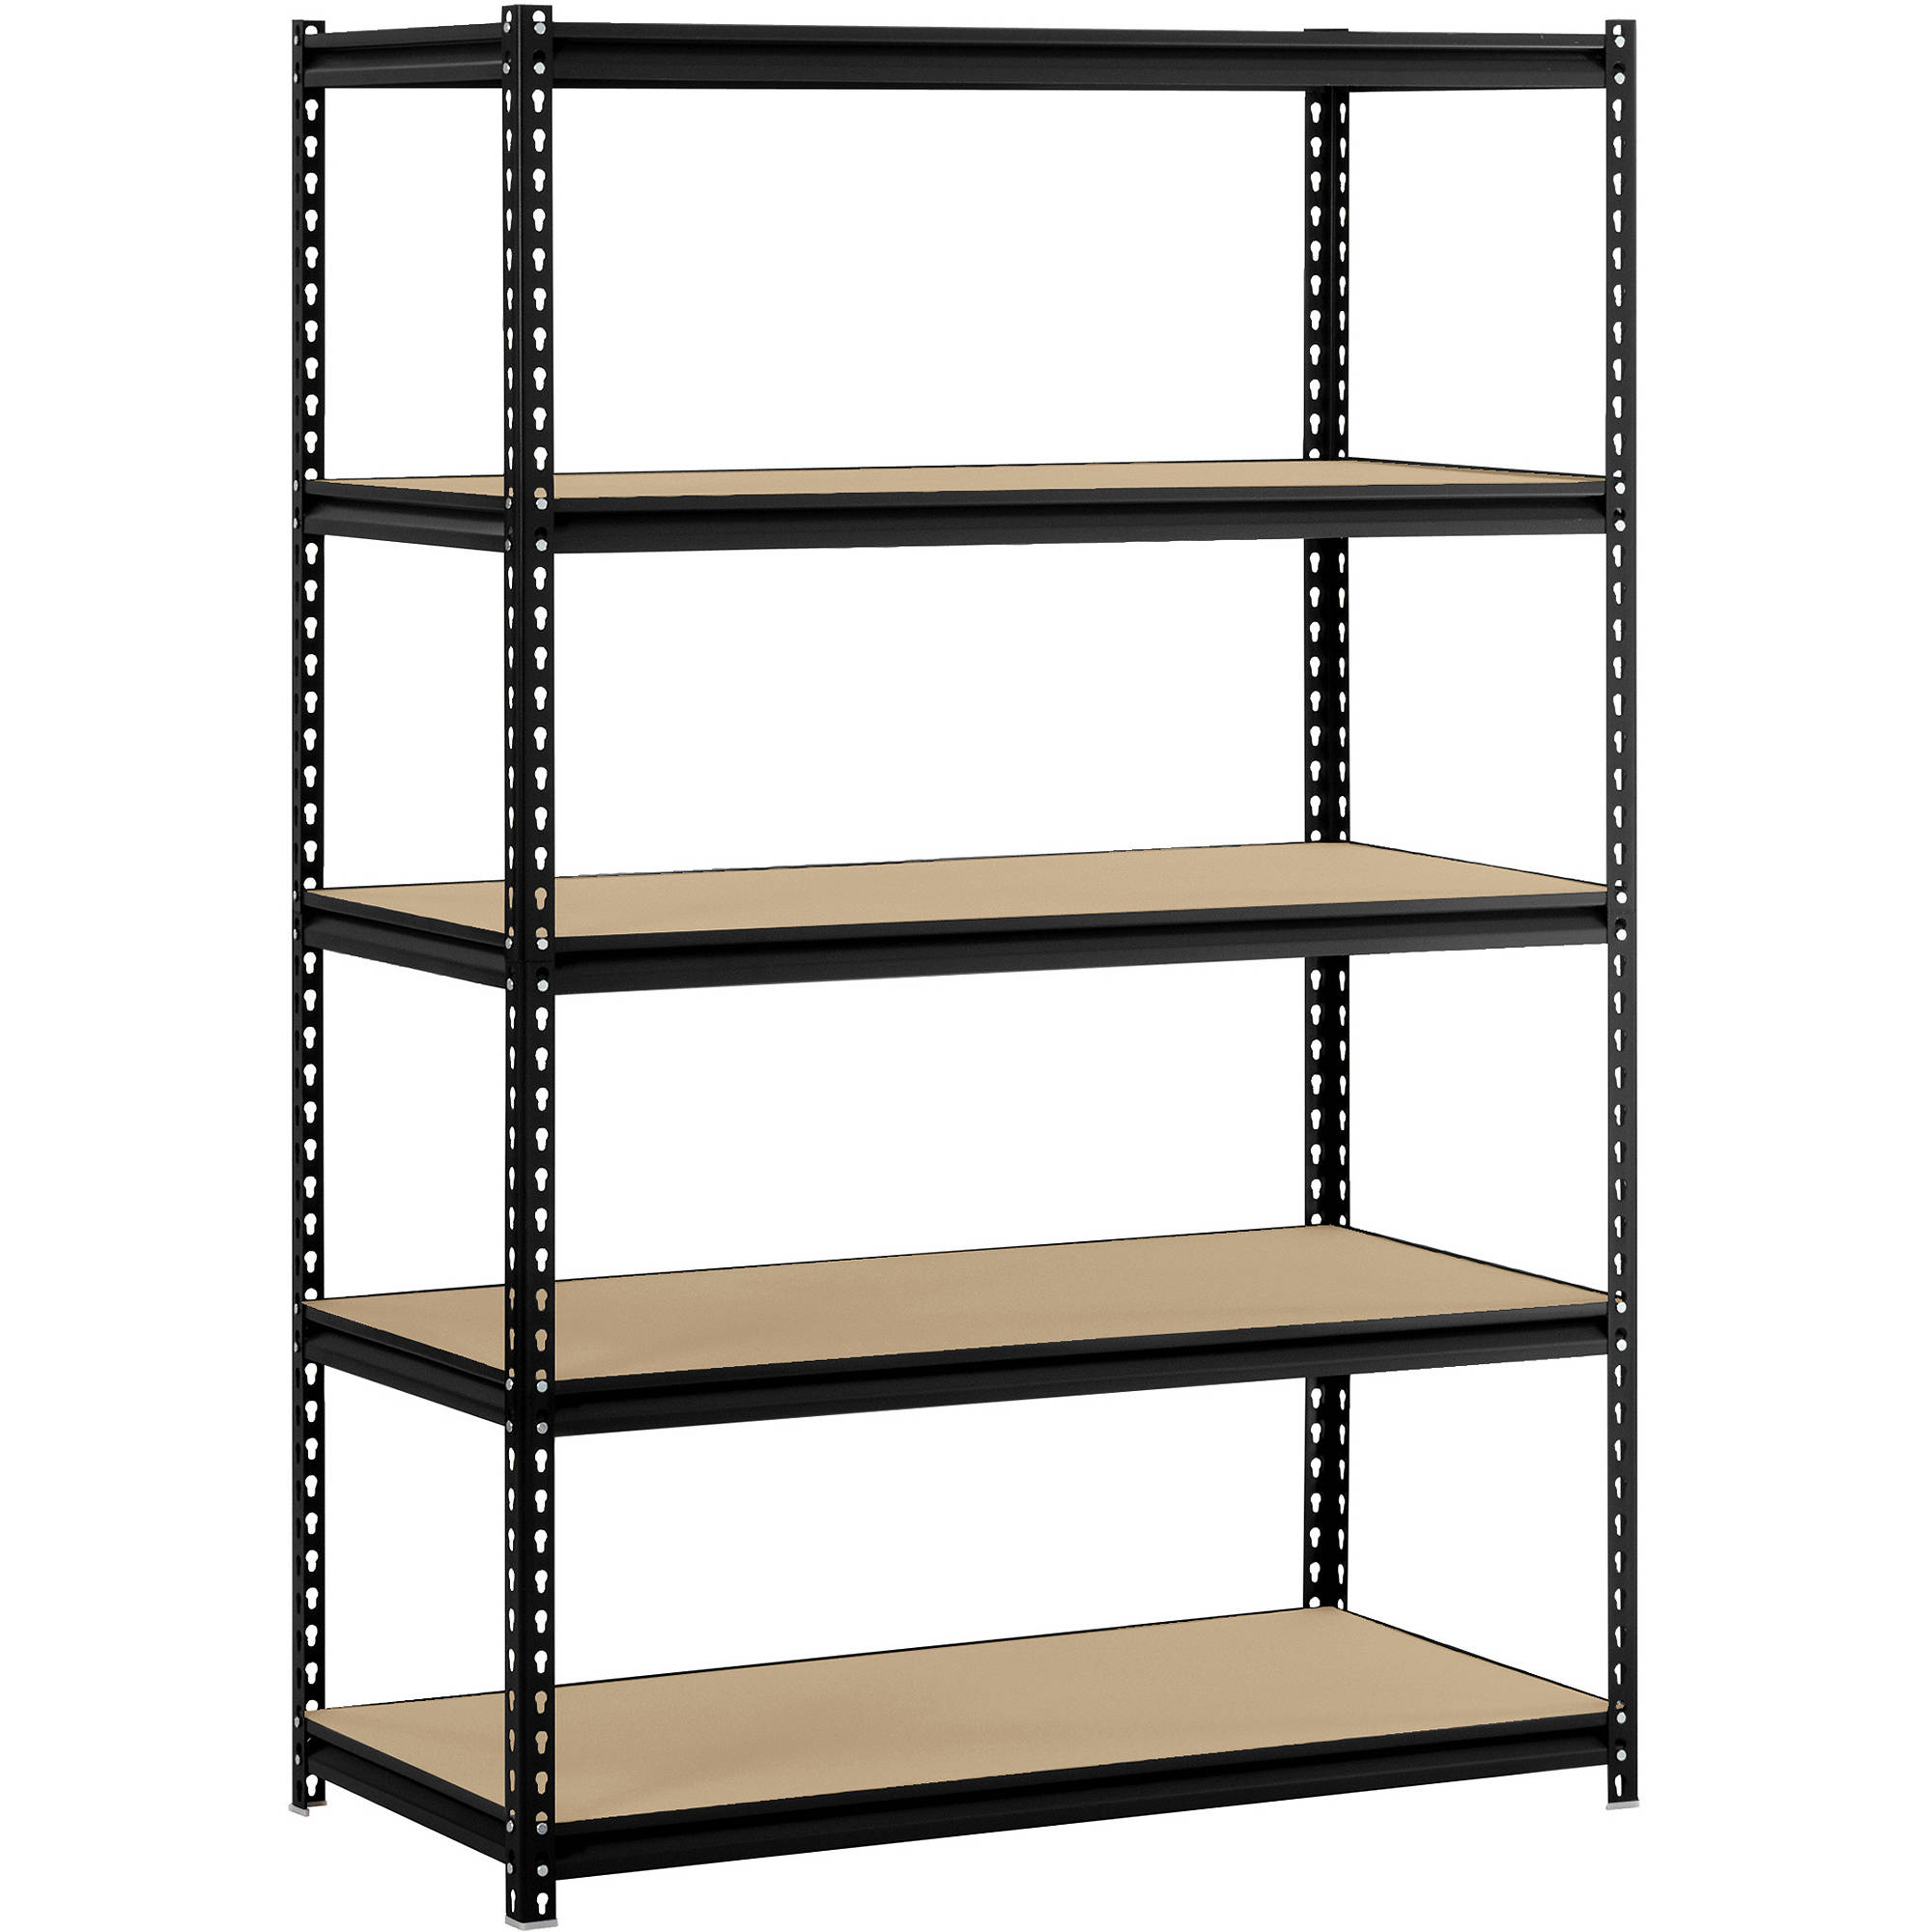 Garage Organization Shelving: Garage Storage